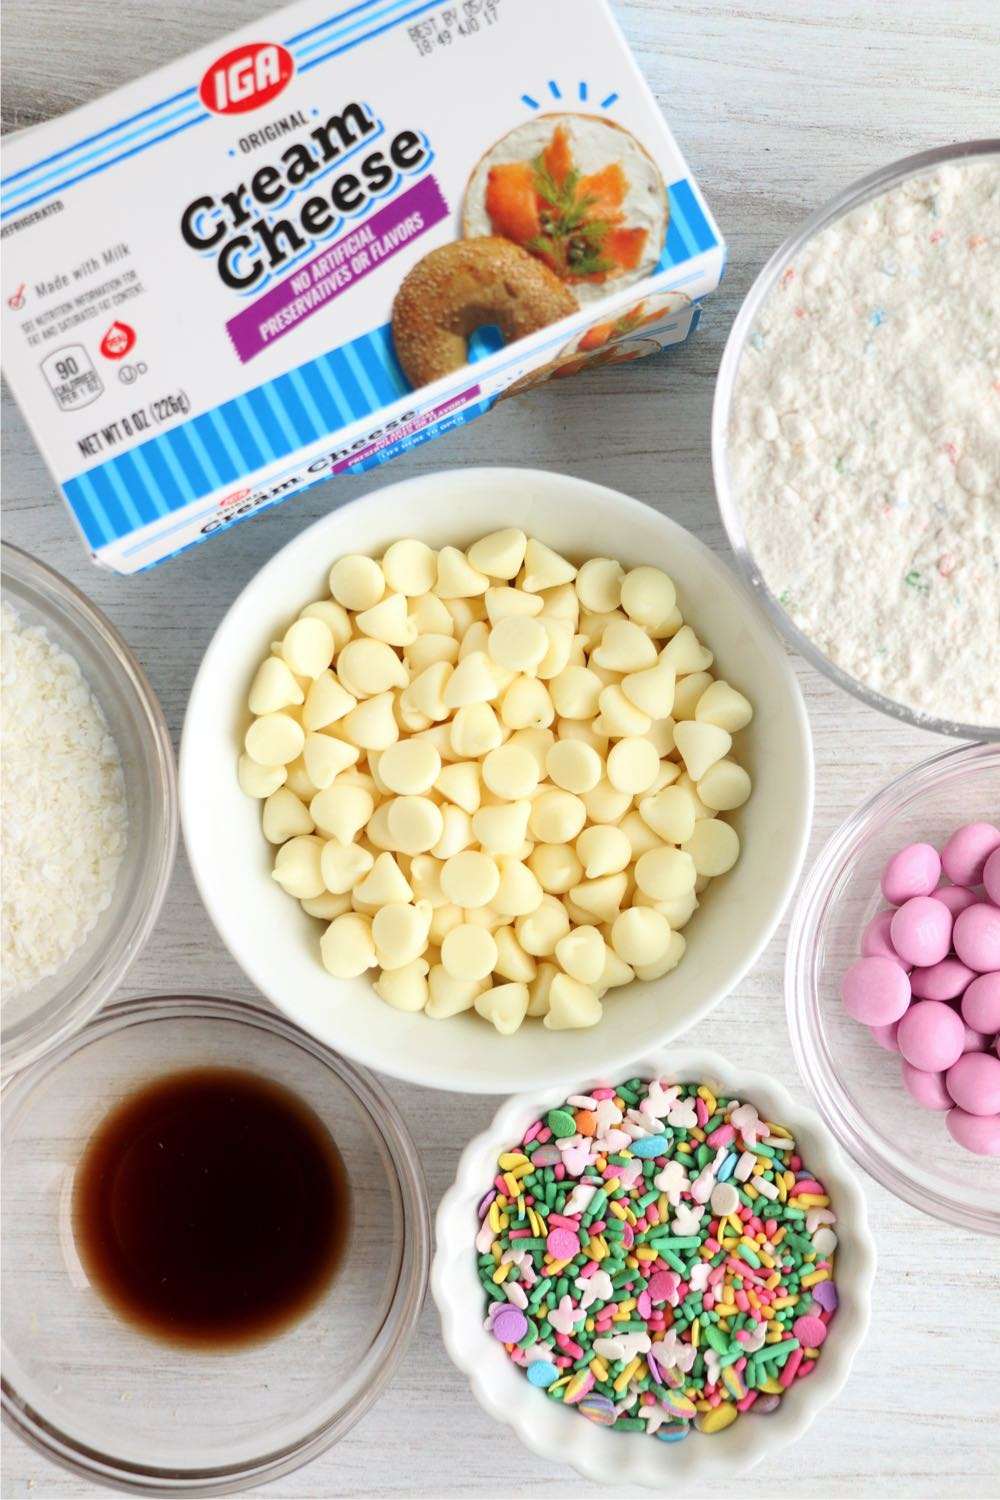 Ingredients for Easter cheese ball